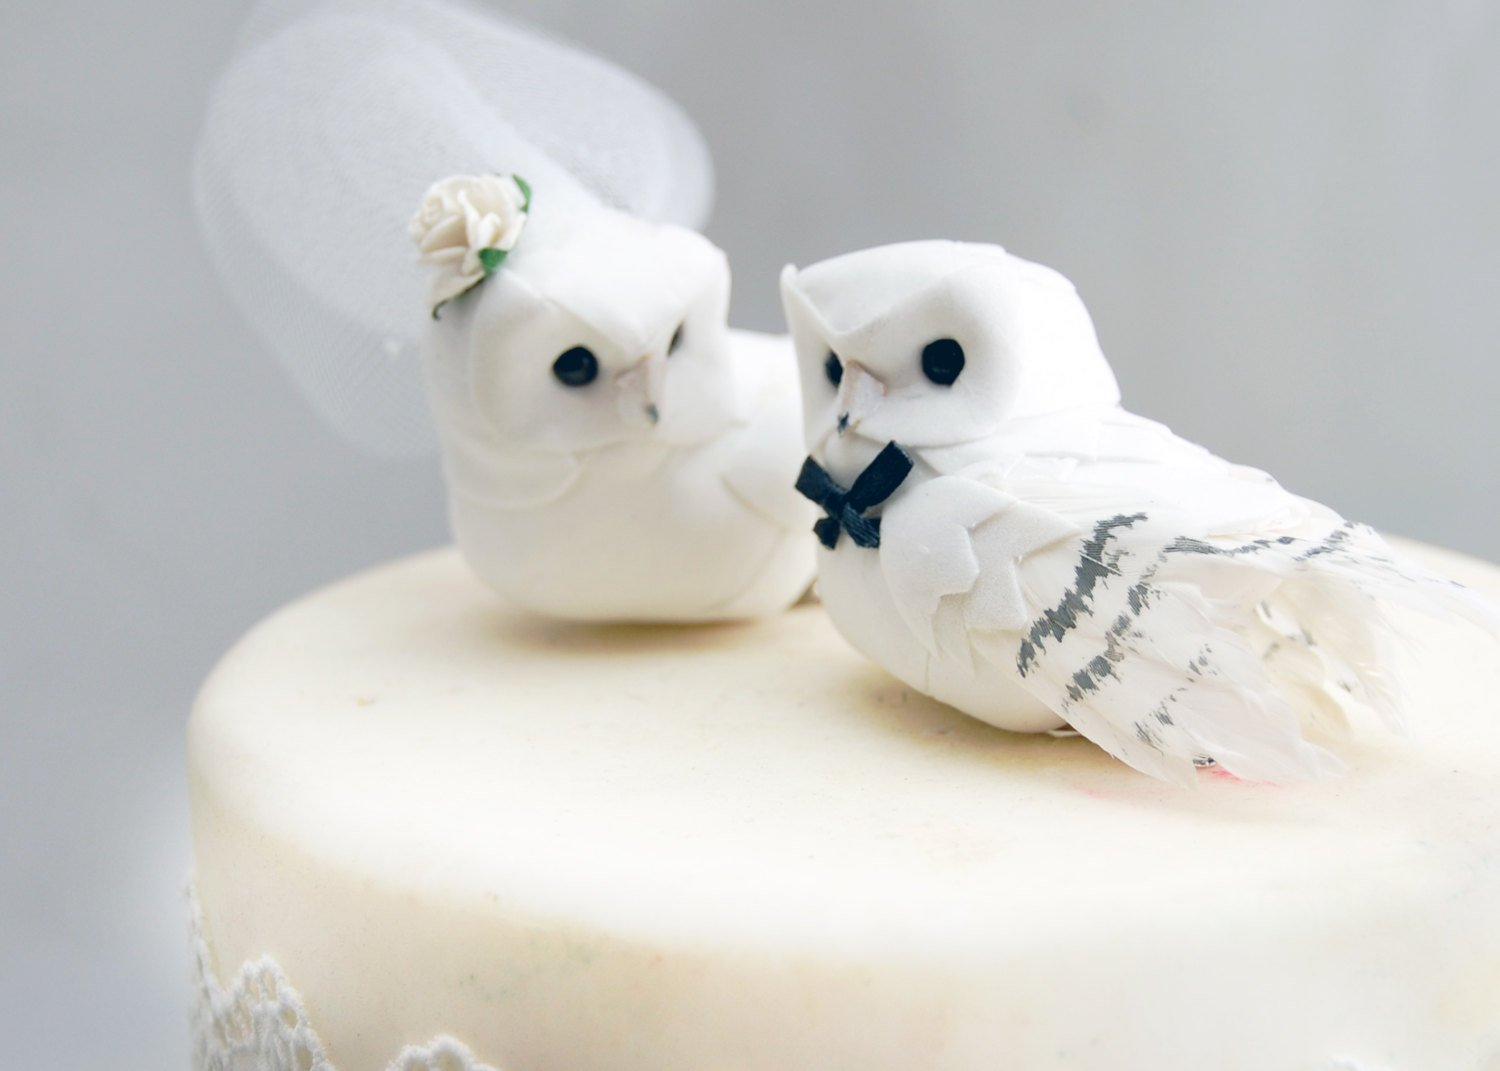 Amazoncom Snowy Owl Cake Topper in Winter White Rustic Bride